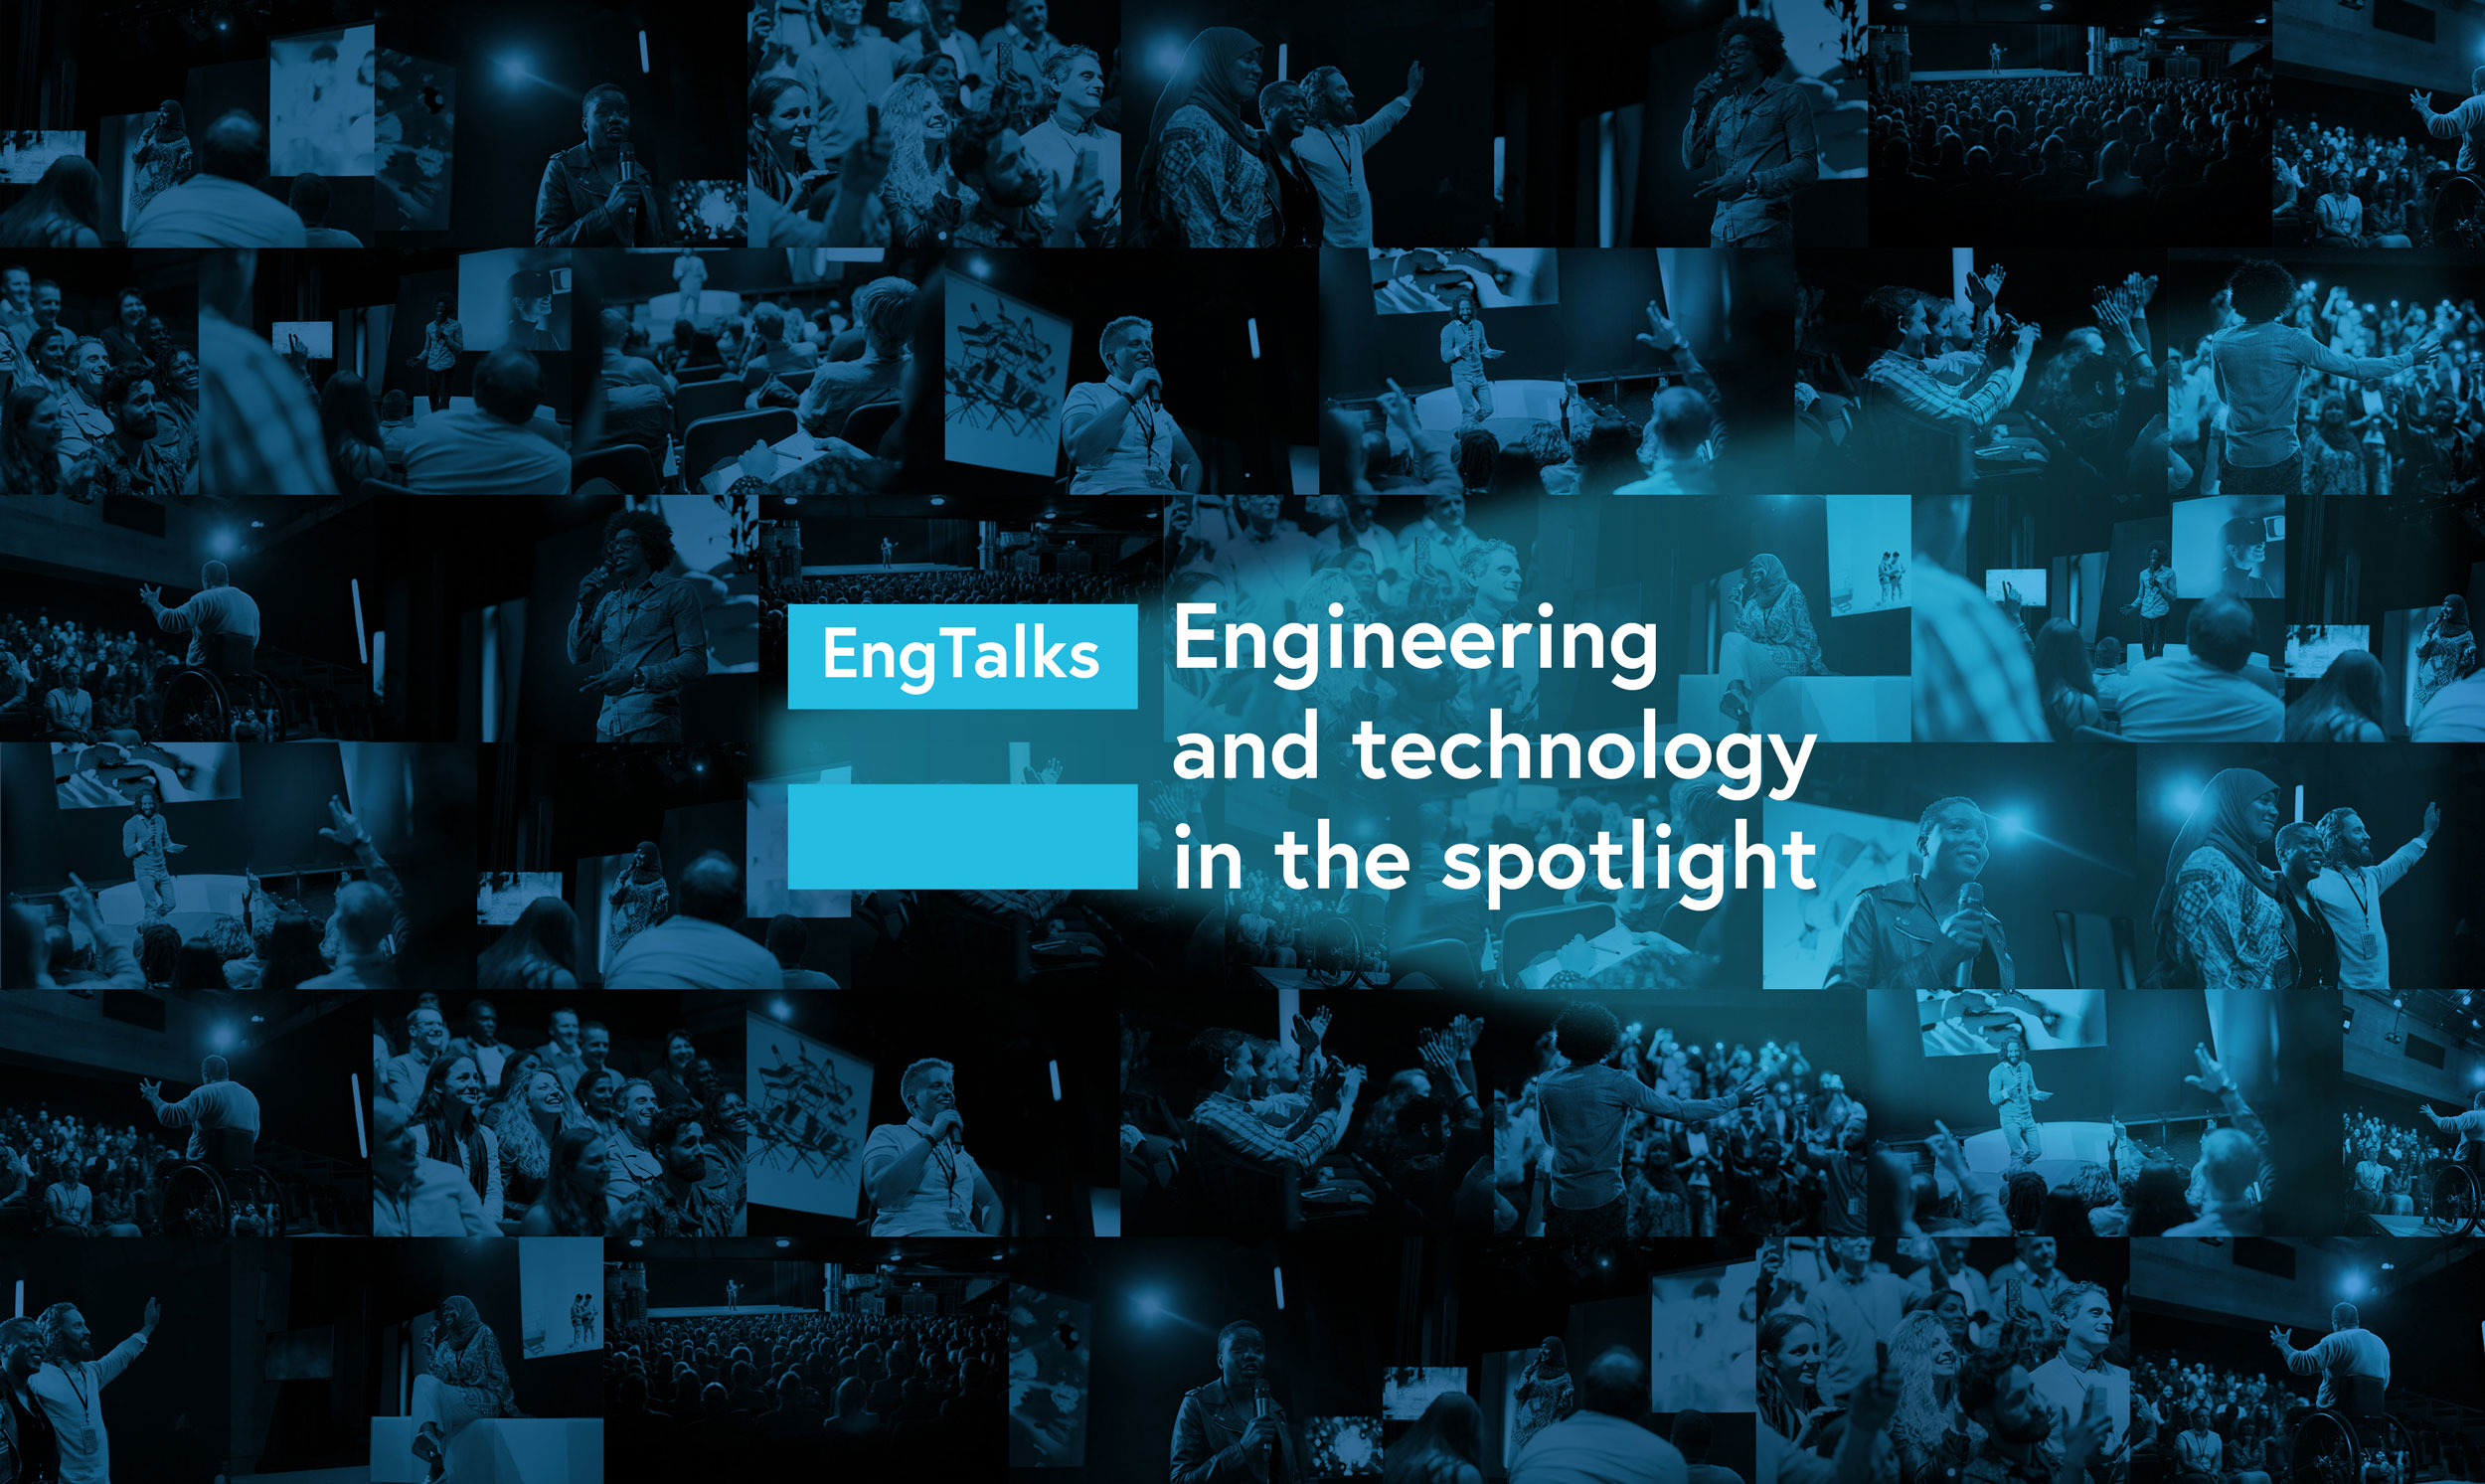 EngTalks-header.jpg